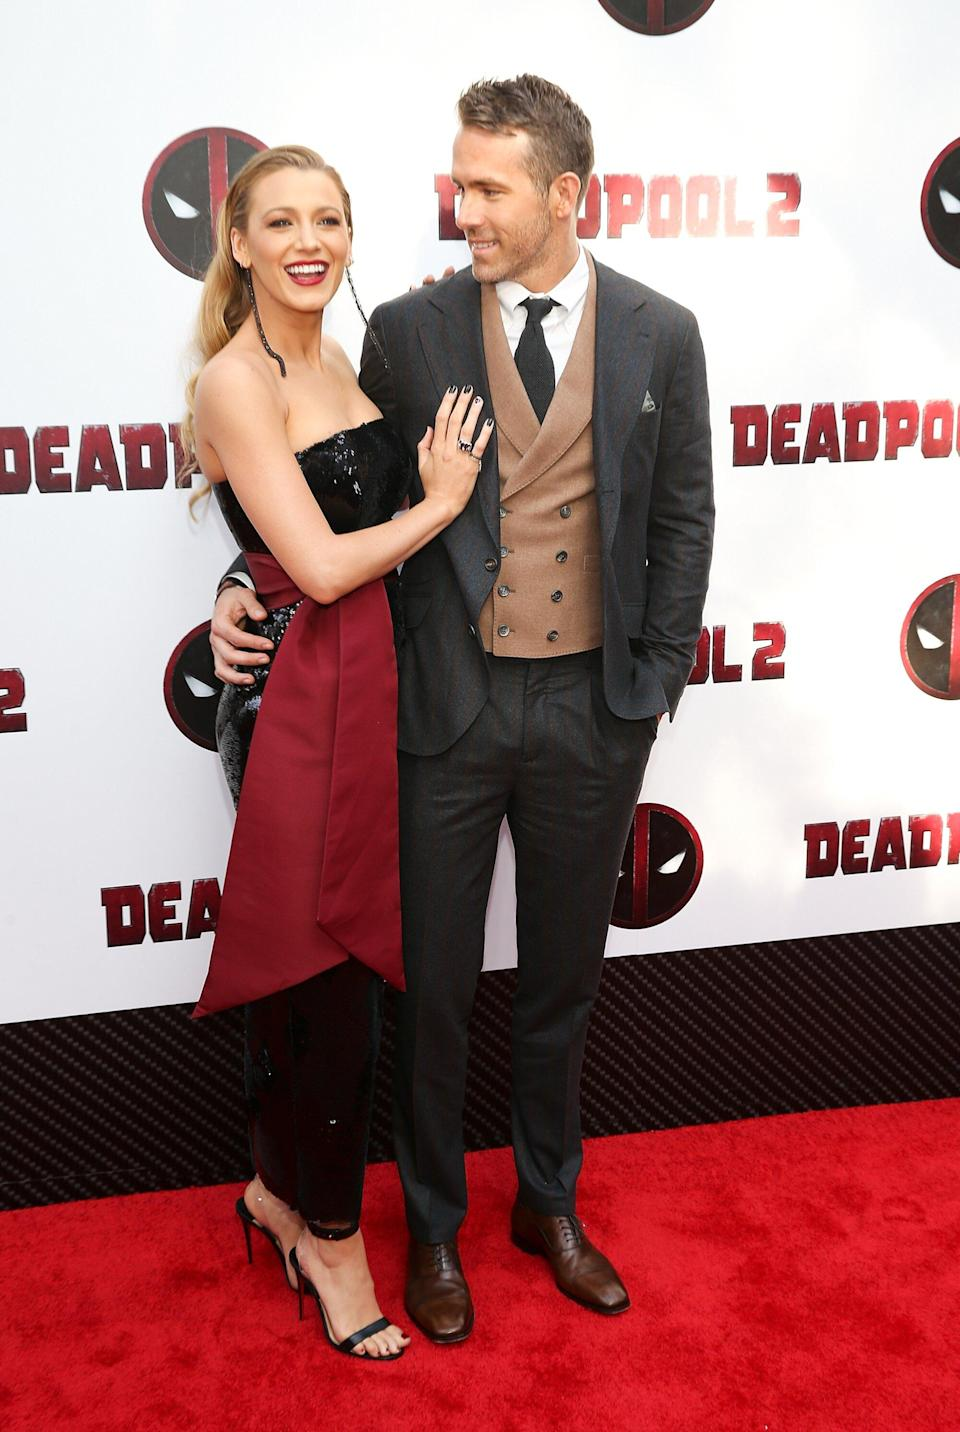 Blake Lively Attempts to Destroy Ryan Reynolds's Heartthrob Status with Her Latest Troll